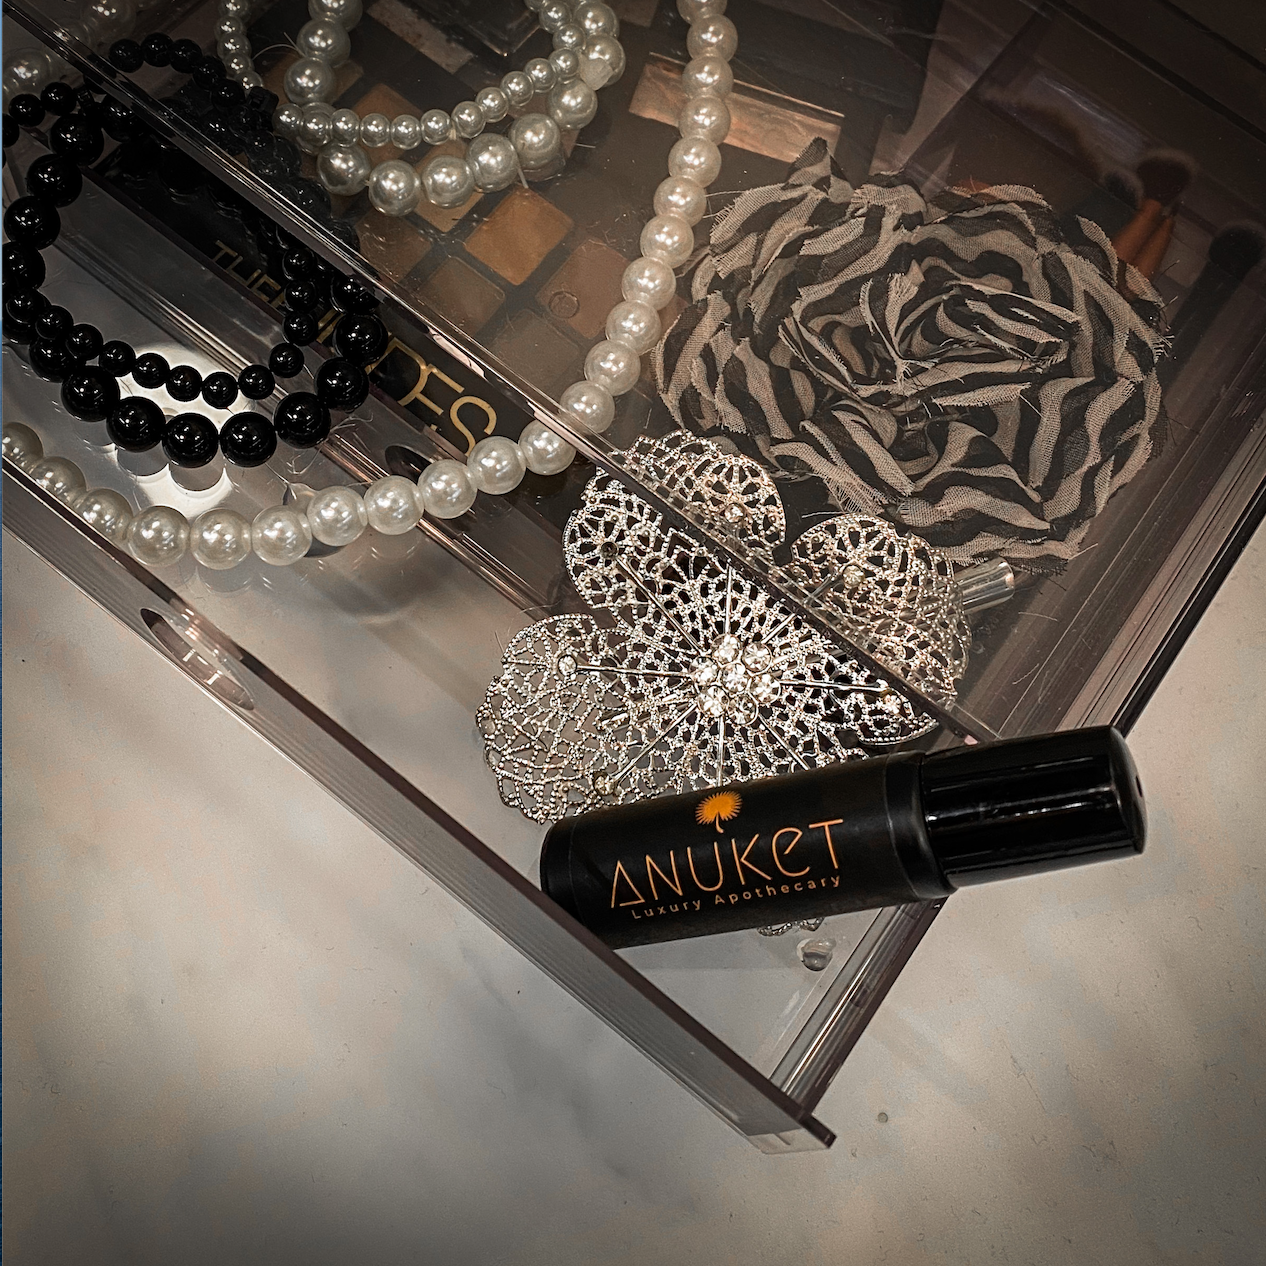 Bottle of Anuket papyrus oil roll-on fragrance perfume in a jewelry box with pearl necklace and lapel pin